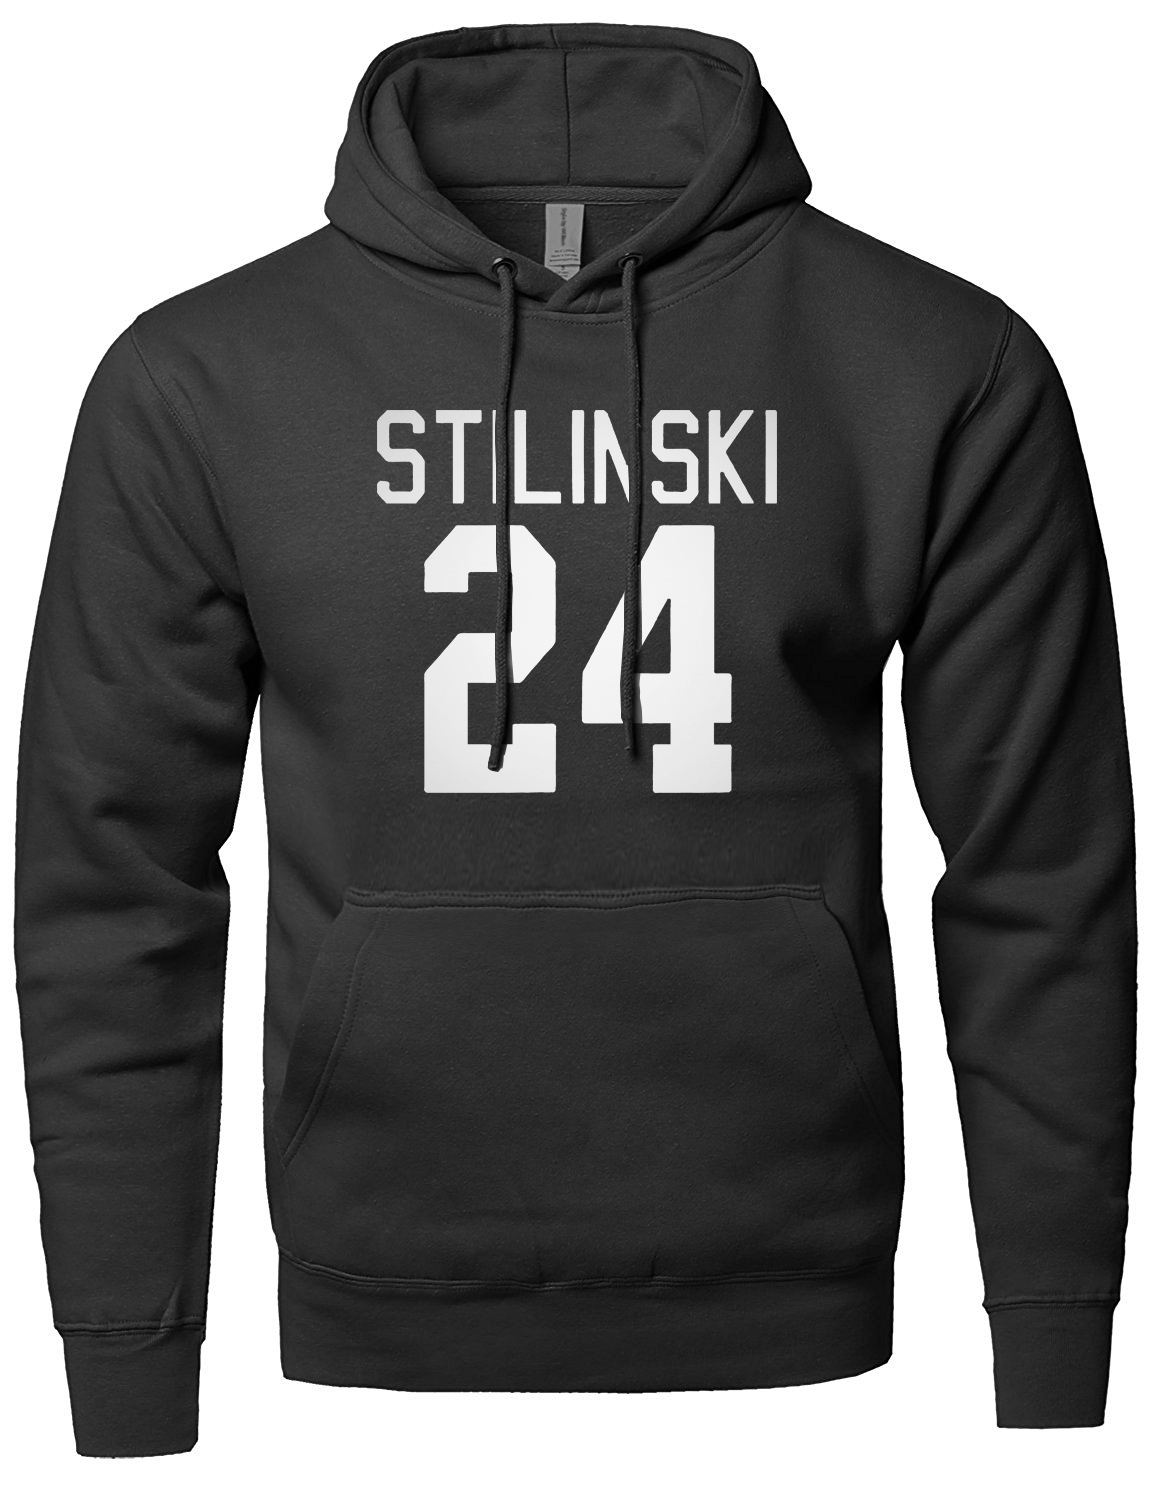 2019 new spring winter men sweatshirt Teen Wolf Stilinski 24 hoodies men fashion casual fleece high quality men hooded sudadera